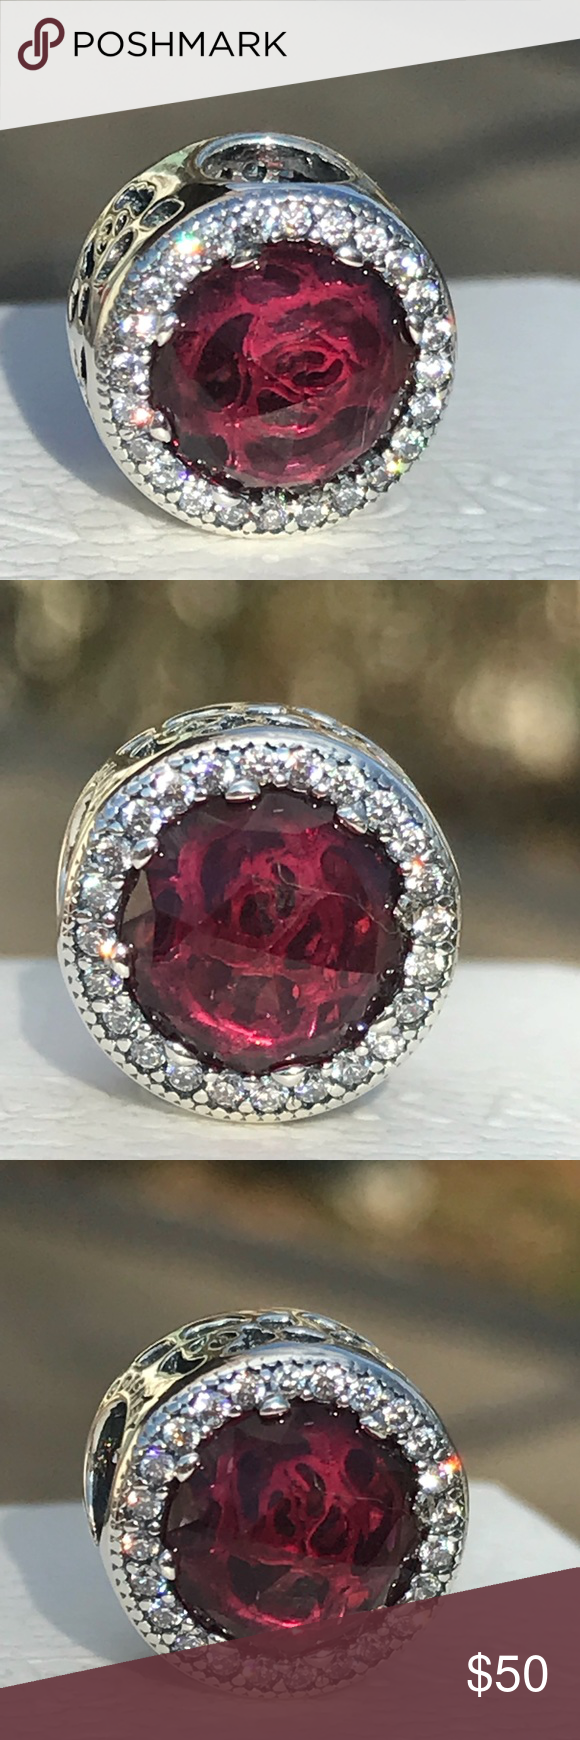 80c906222 Pandora Disney Belle's Radiant Rose Charm Authentic Pandora Disney Charm Belle's  Radiant Rose with Cerise crystal and clear CZ Beauty and the Beast ...